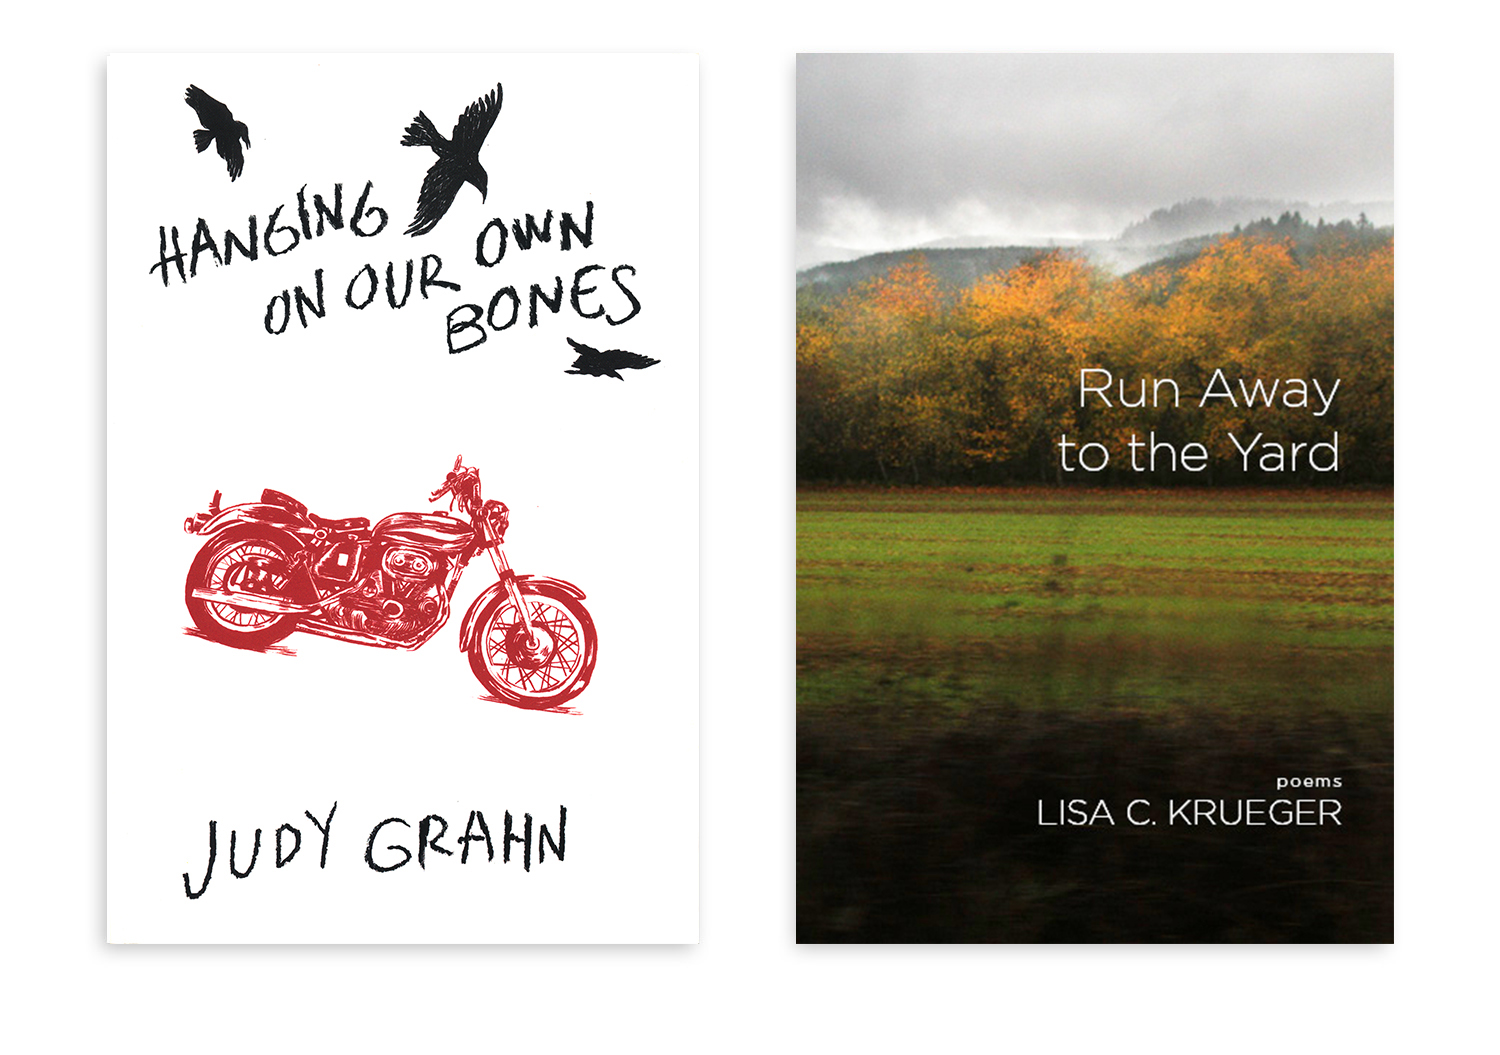 Hanging On Our Bones  and  Run Away to the Yard  were other titles I worked on while at Red Hen Press. Here you see  Run Away to the Yard  with and without its jacket. I wanted to incorporate a tree motif throughout the book's design.